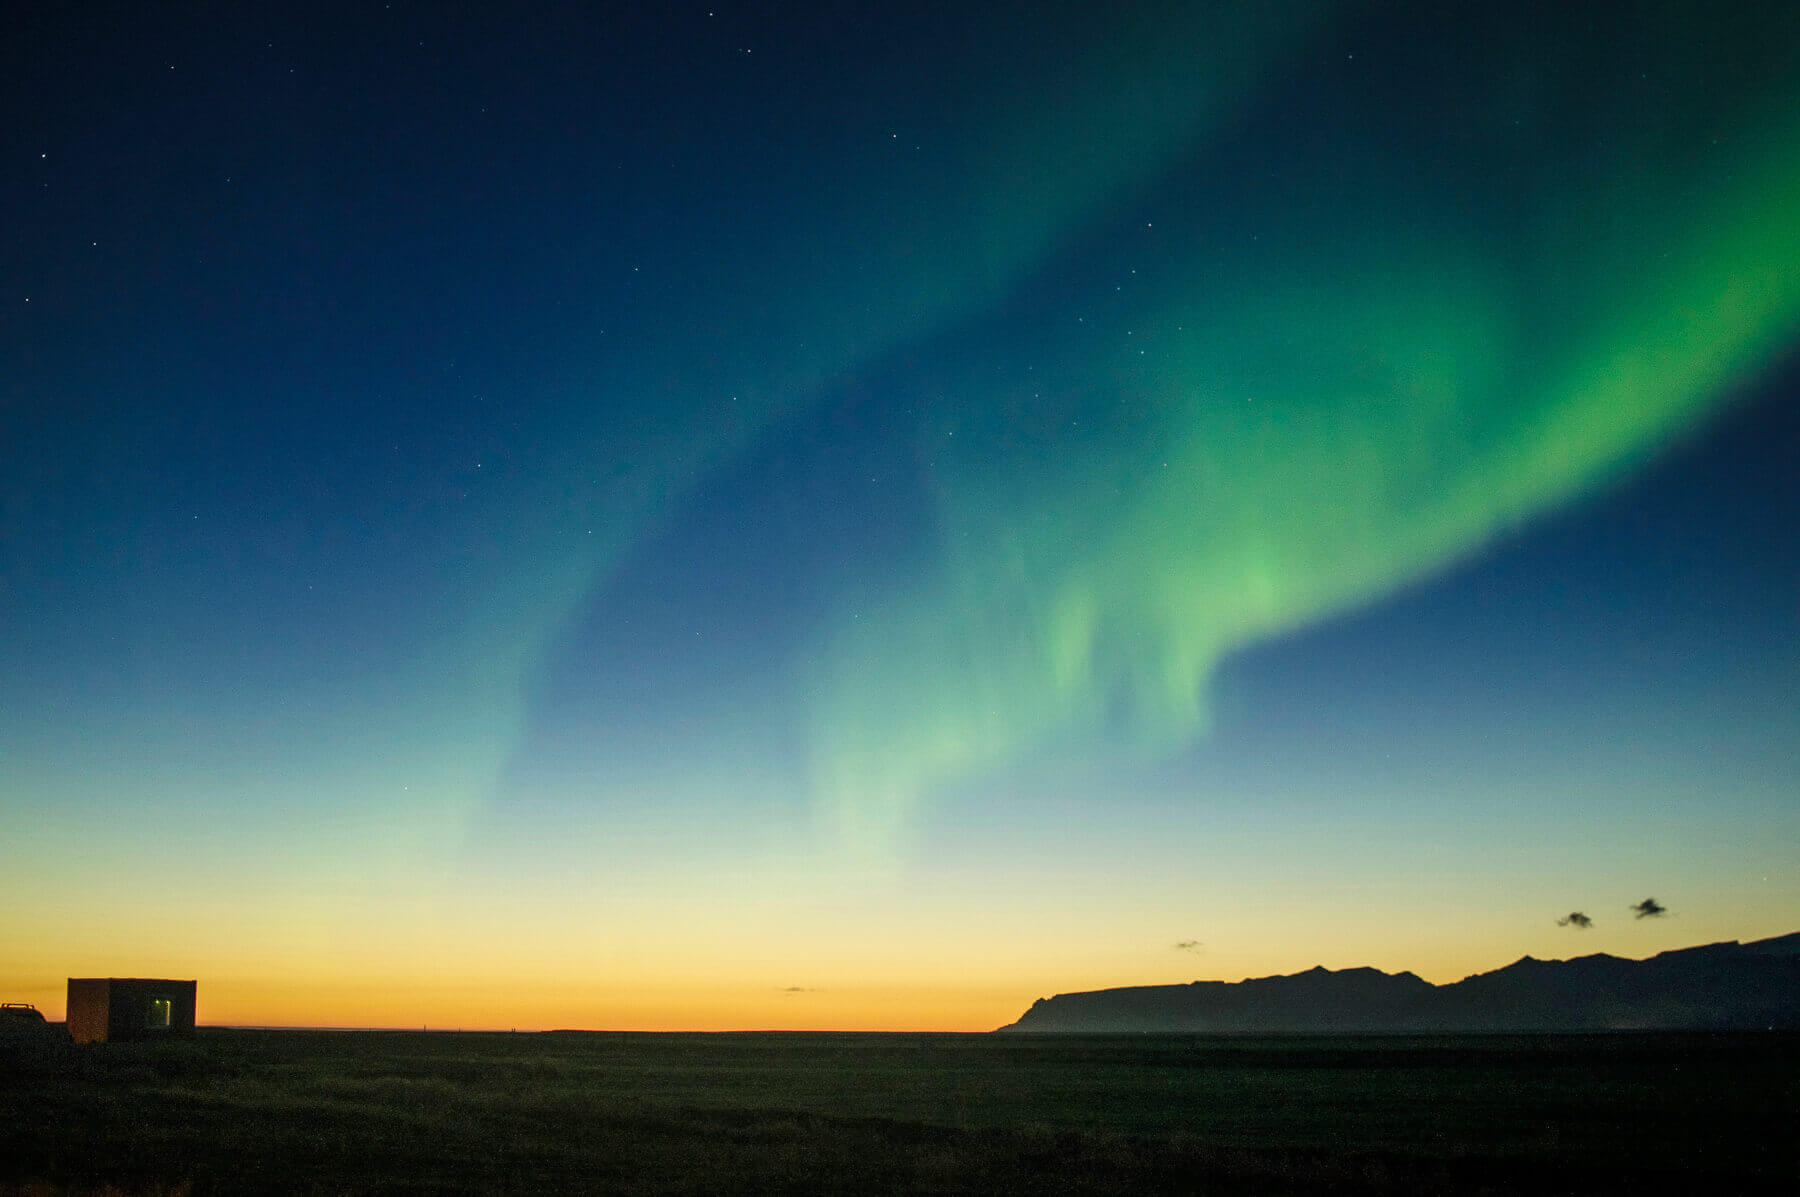 The green northern lights in the sky above the sunset